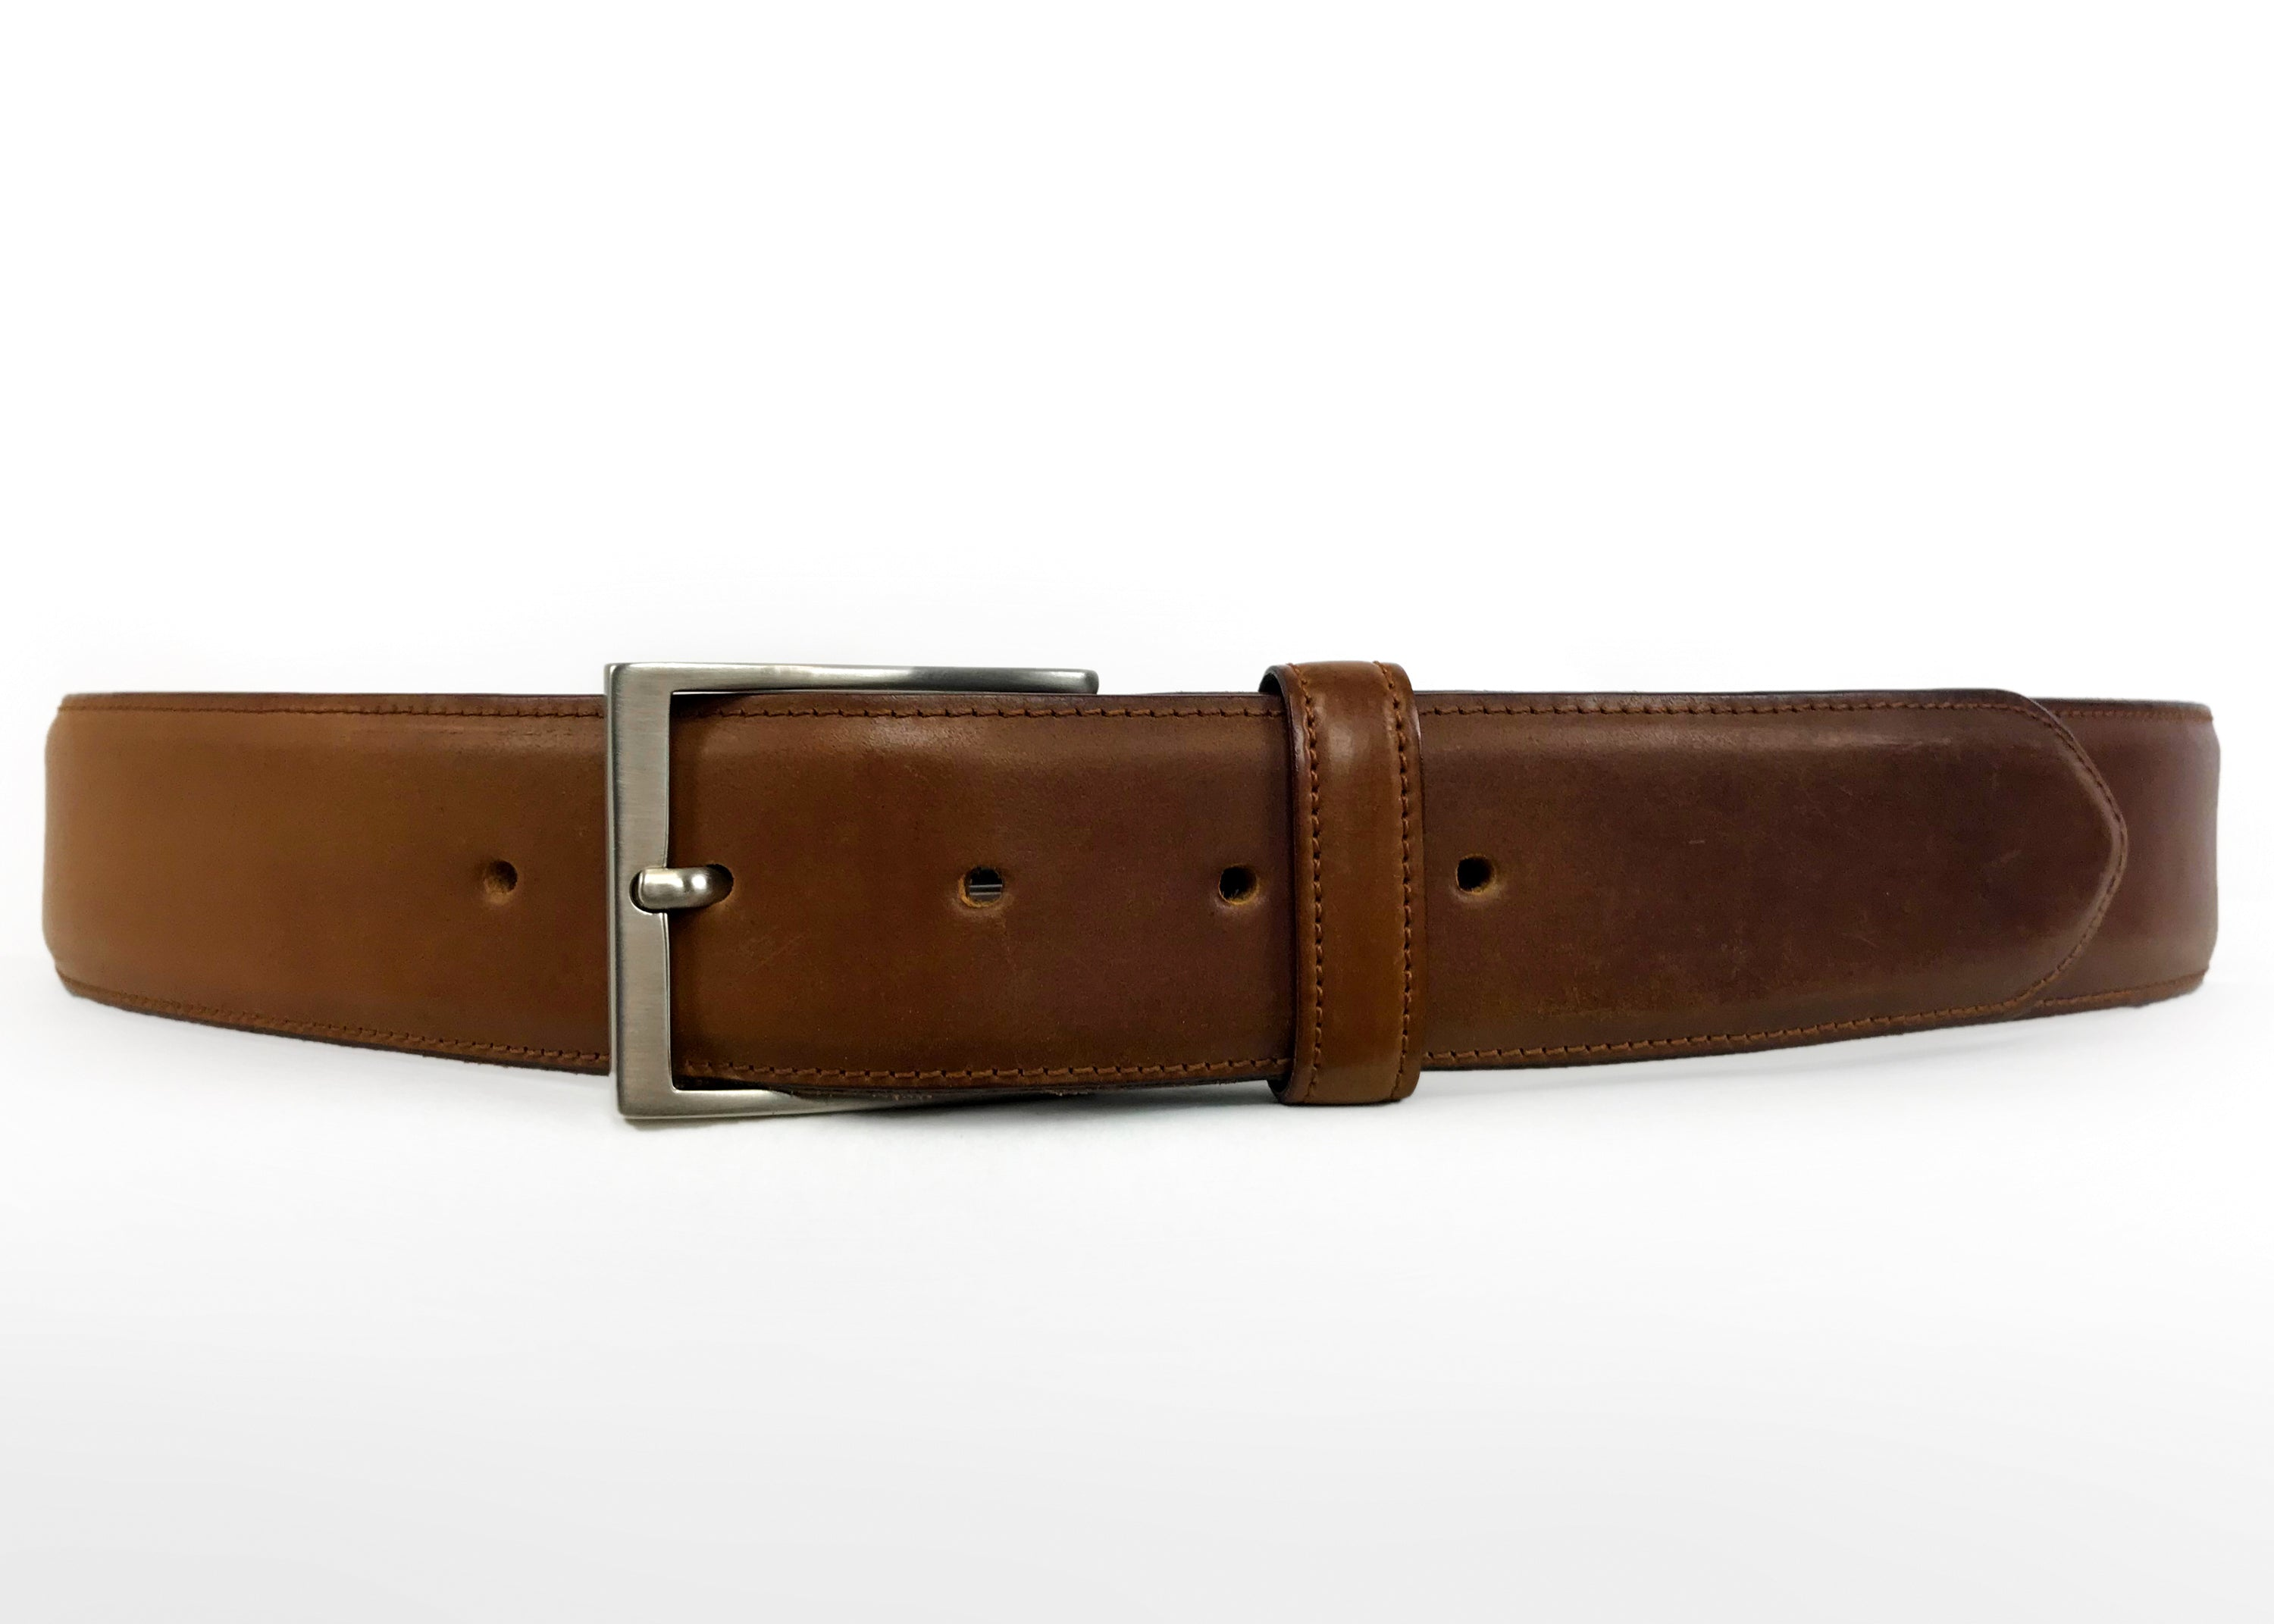 "Kreis Genuine Shell Cordovan Brown Leather Belt, SIZE 36""/ 90cm - secondfirst"